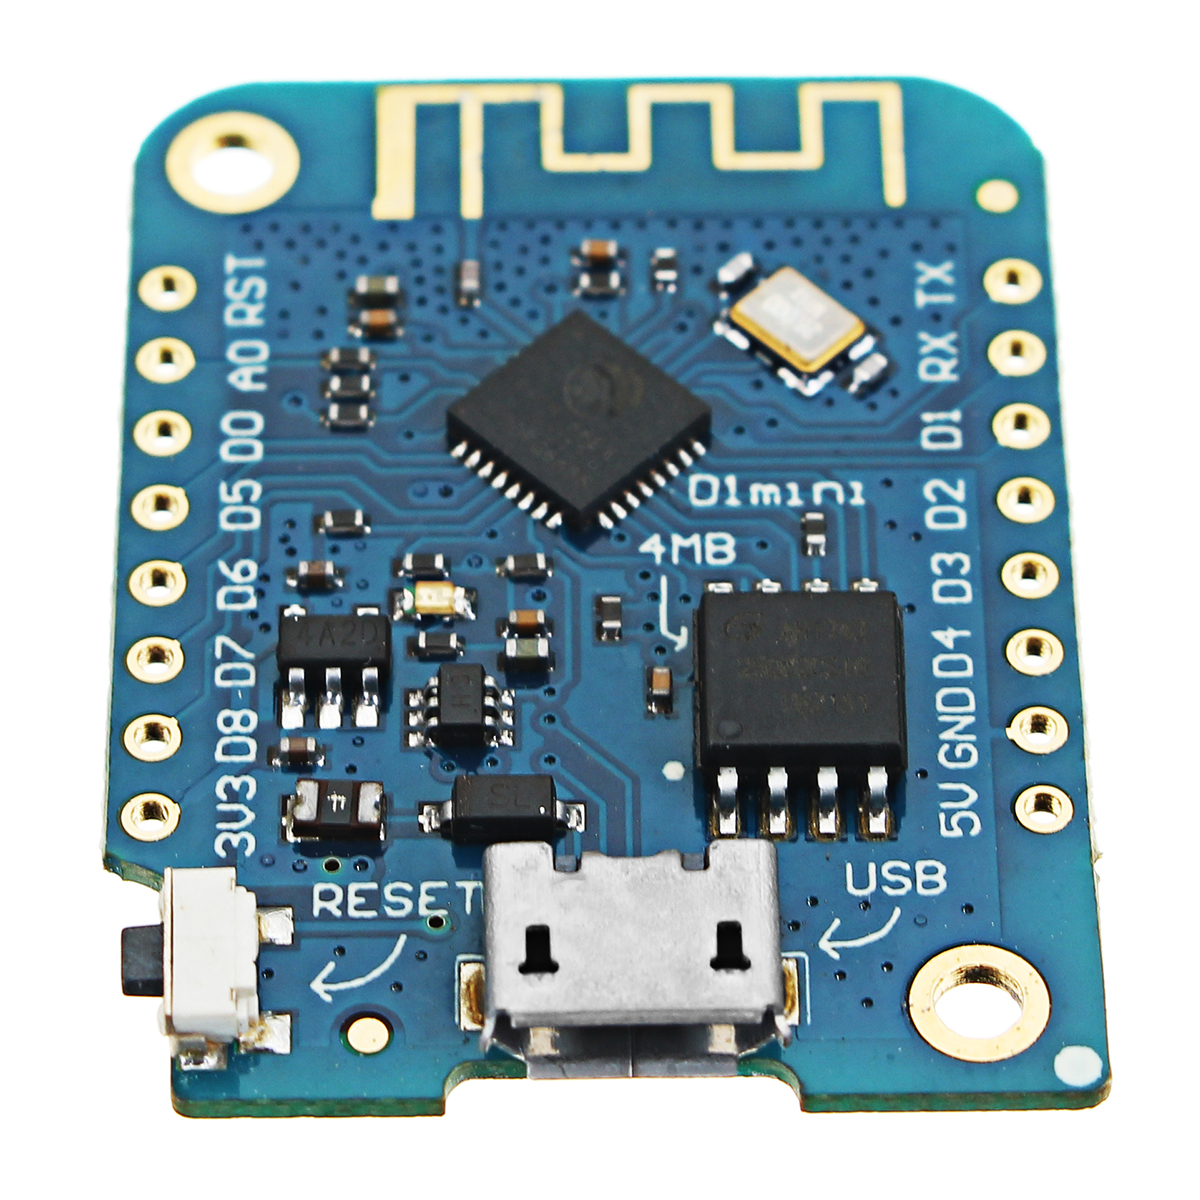 Wemos® D1 Mini V3.0.0 WIFI Internet Of Things Development Board Based ESP8266 4MB MicroPython Nodemcu Arduino Compatible